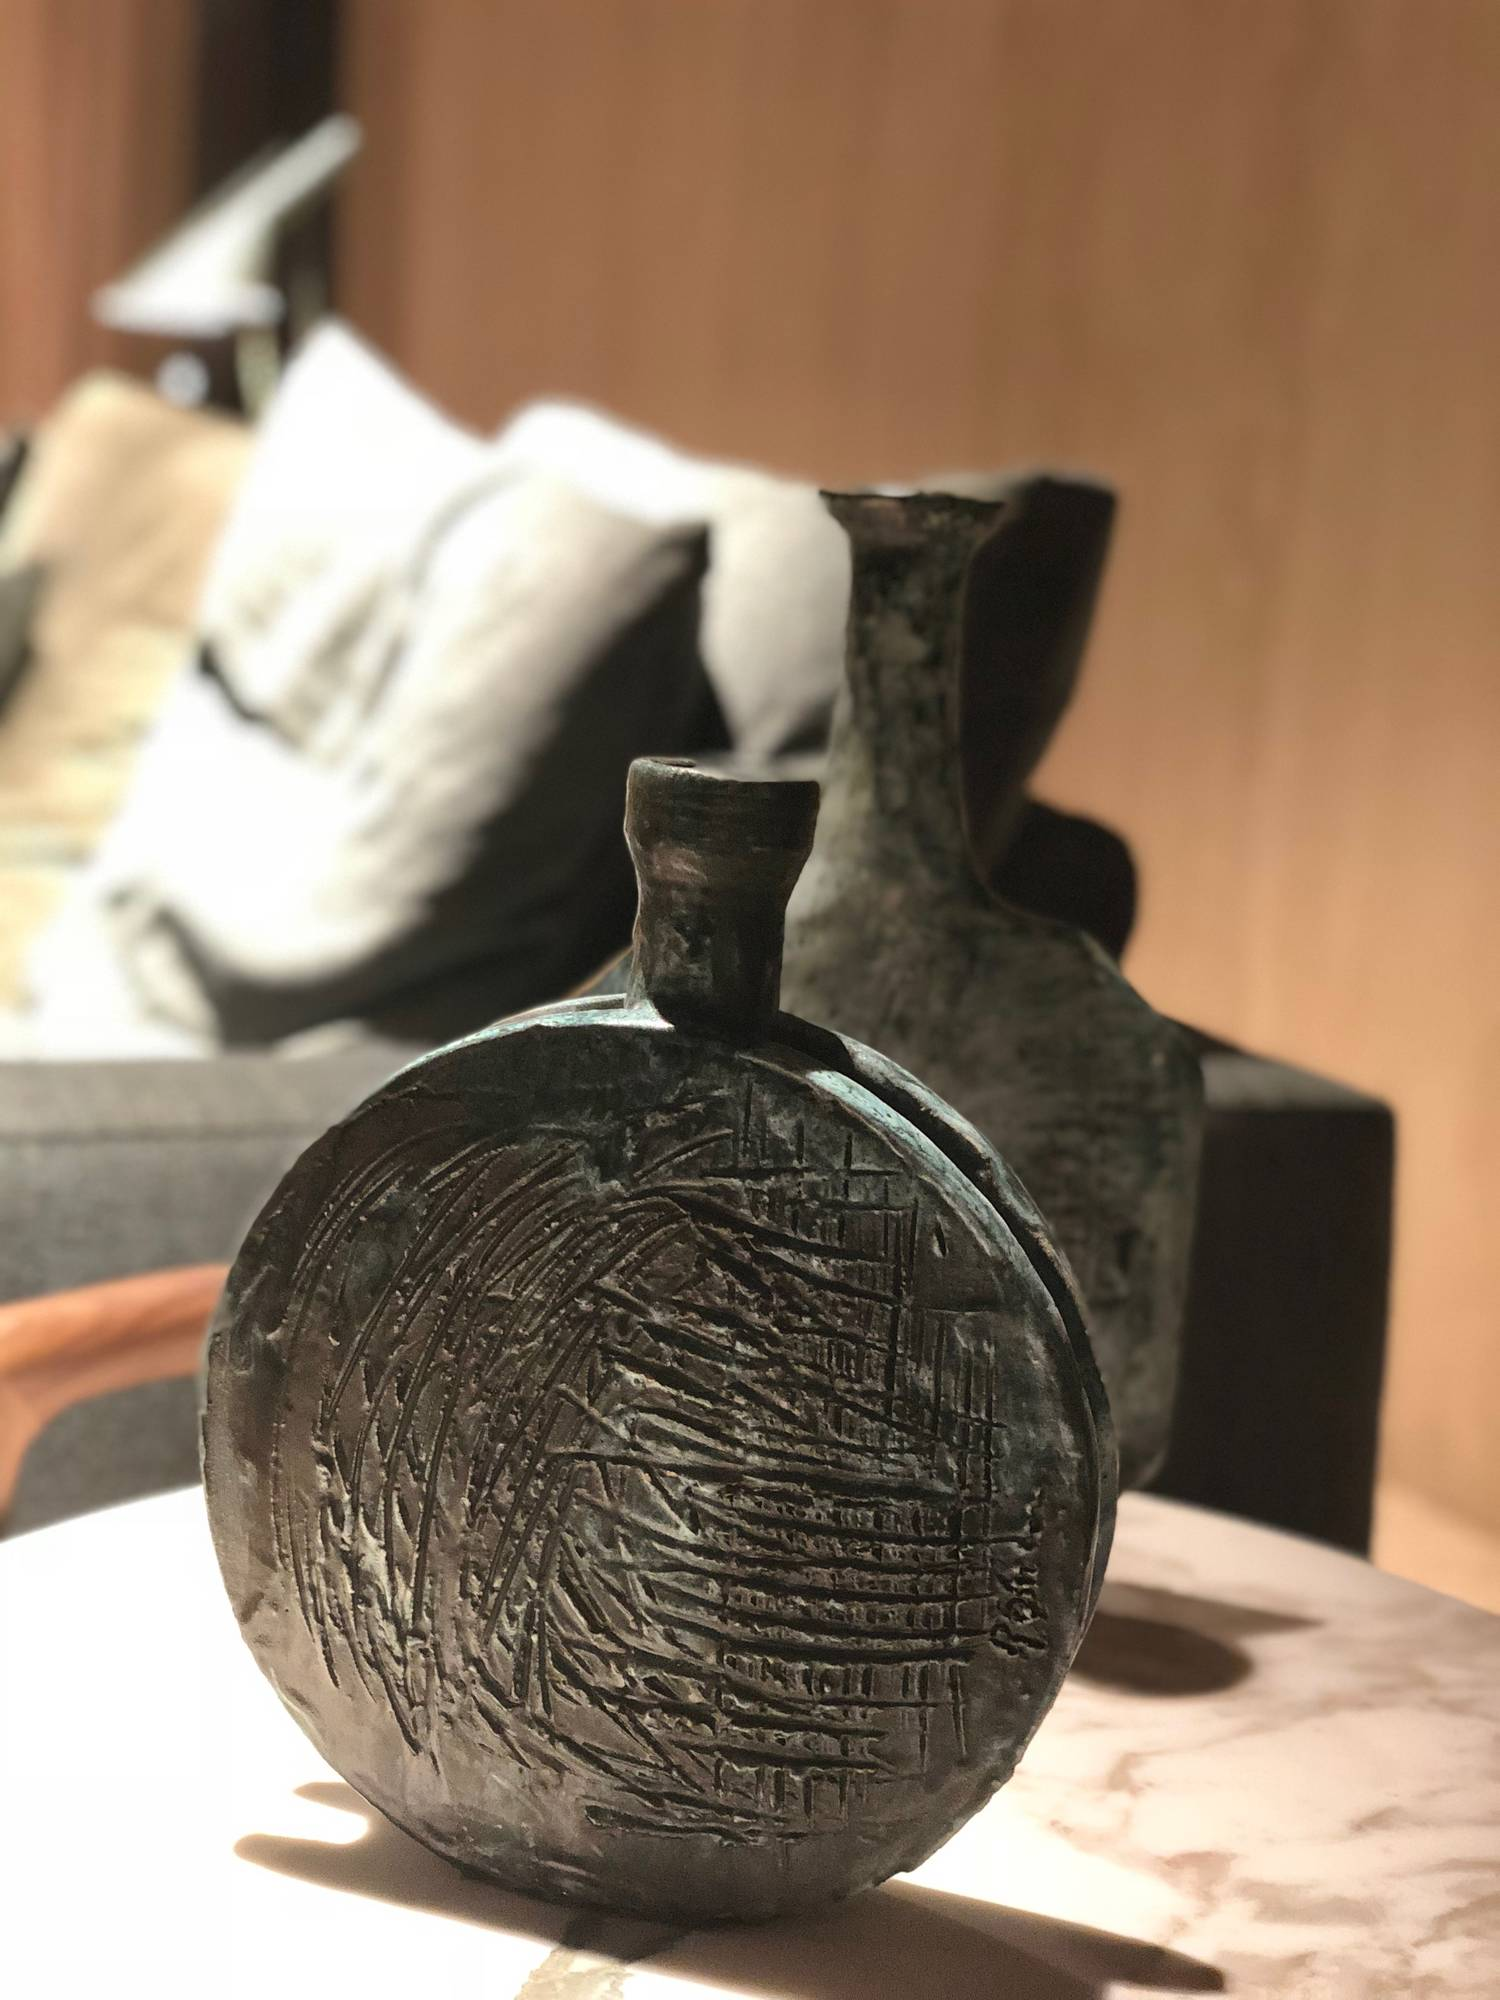 Ceramics at Milan Design Week, Salone Del Mobile